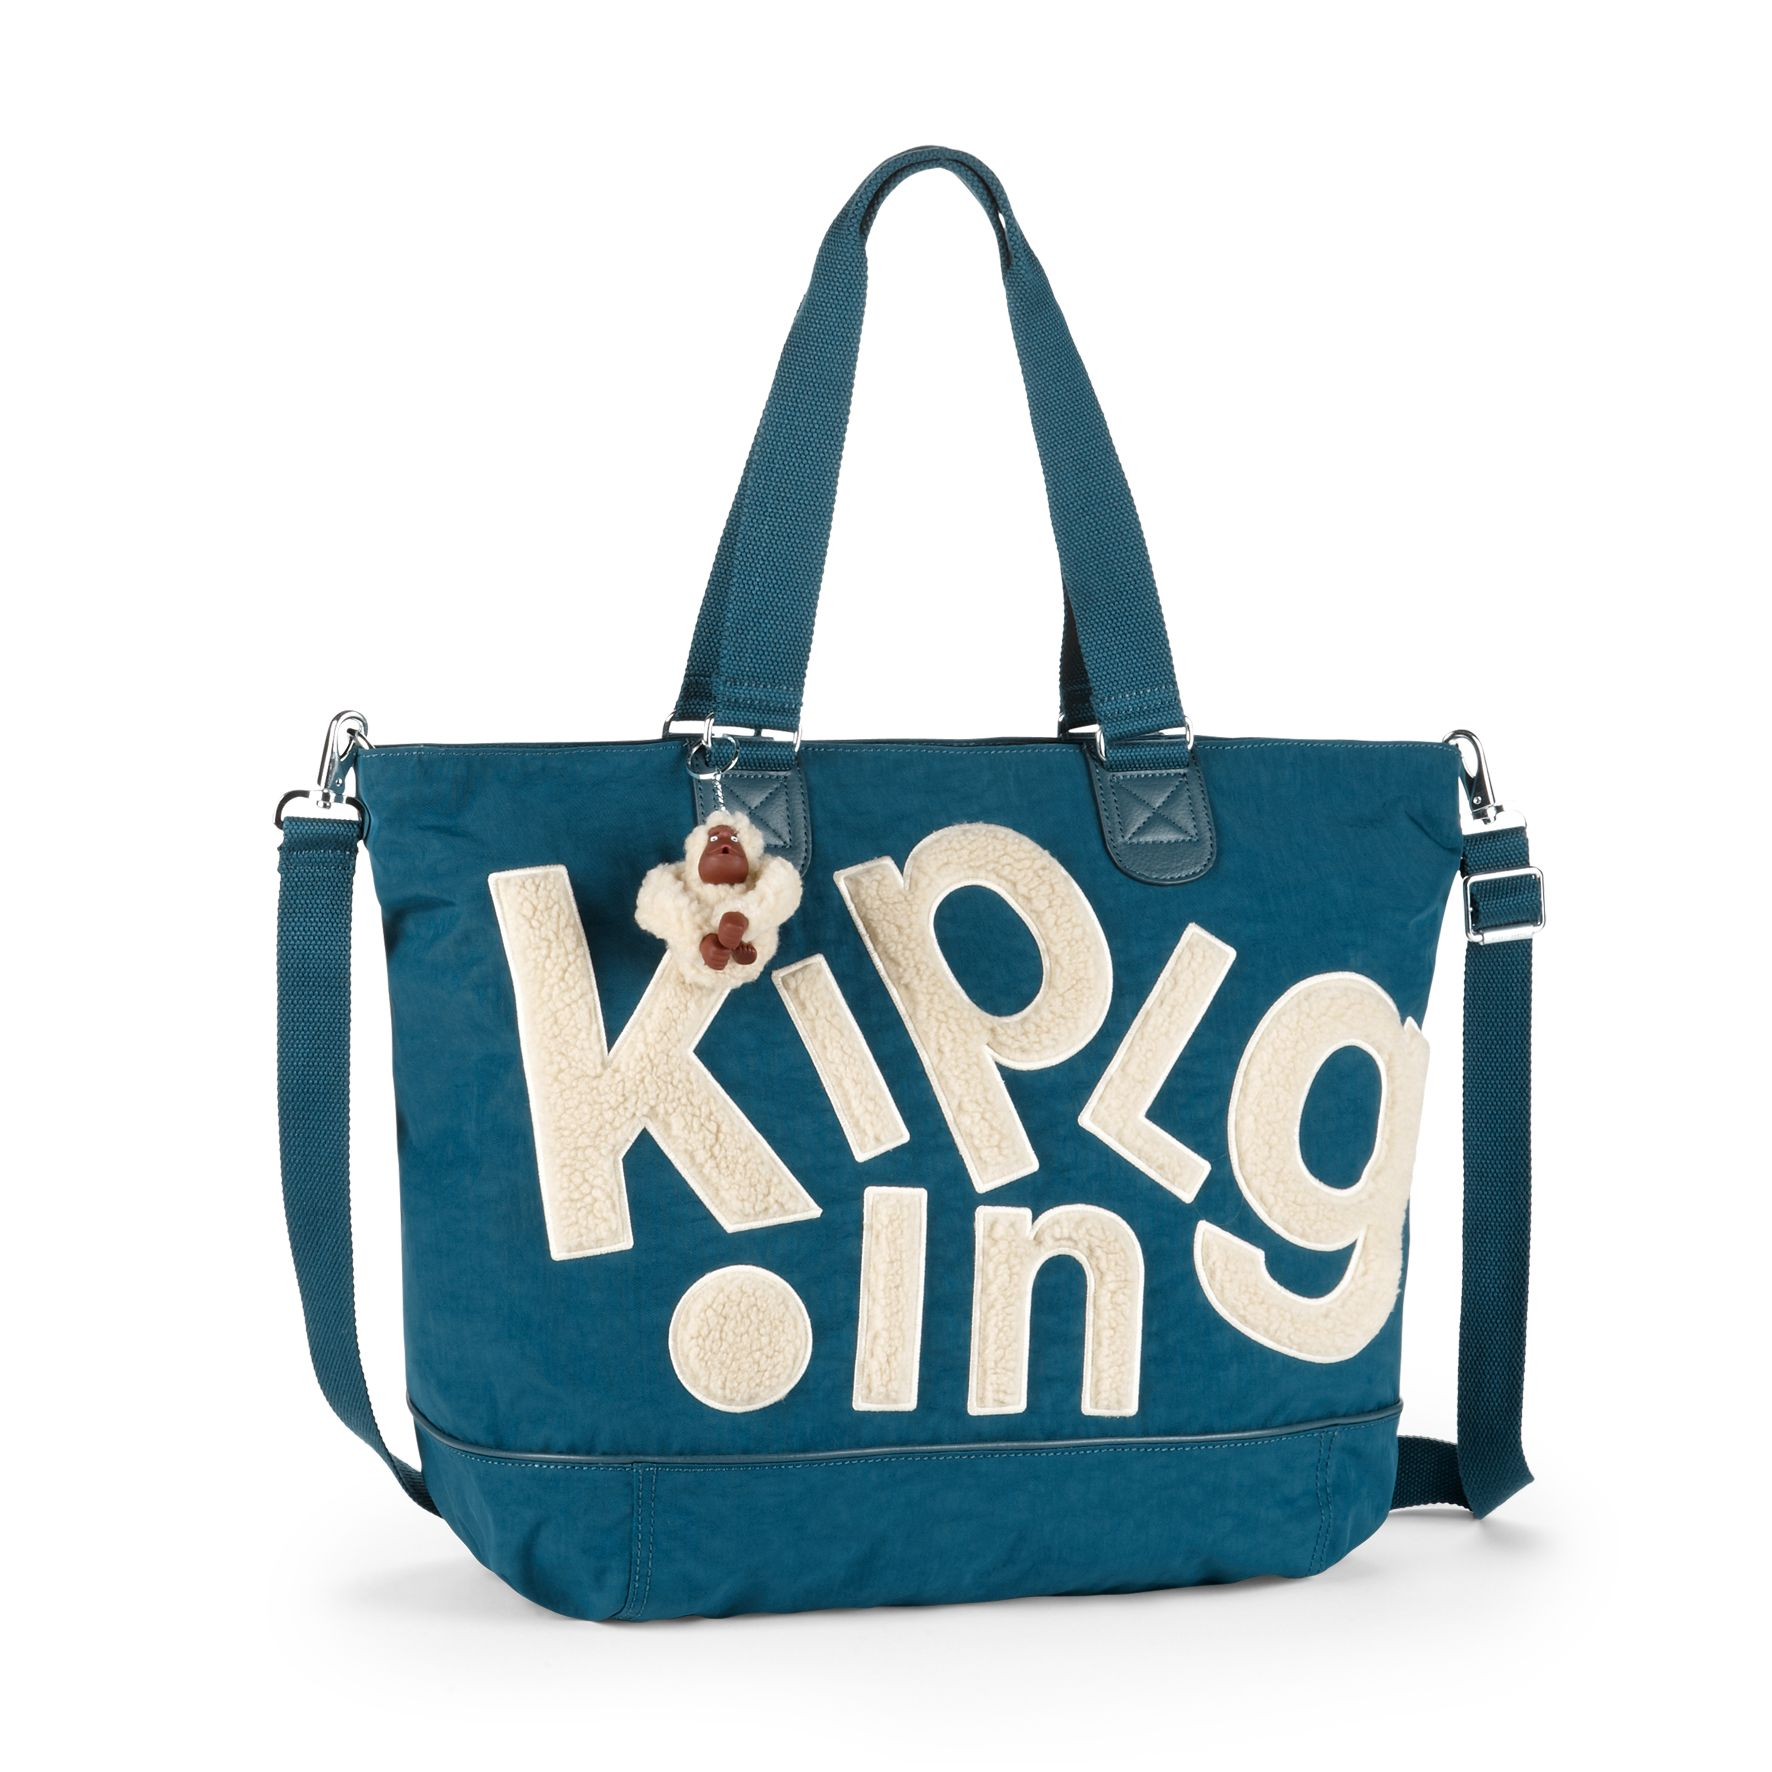 Kipling Shopper Combo Large Shoulder Bag With Removable Strap 88